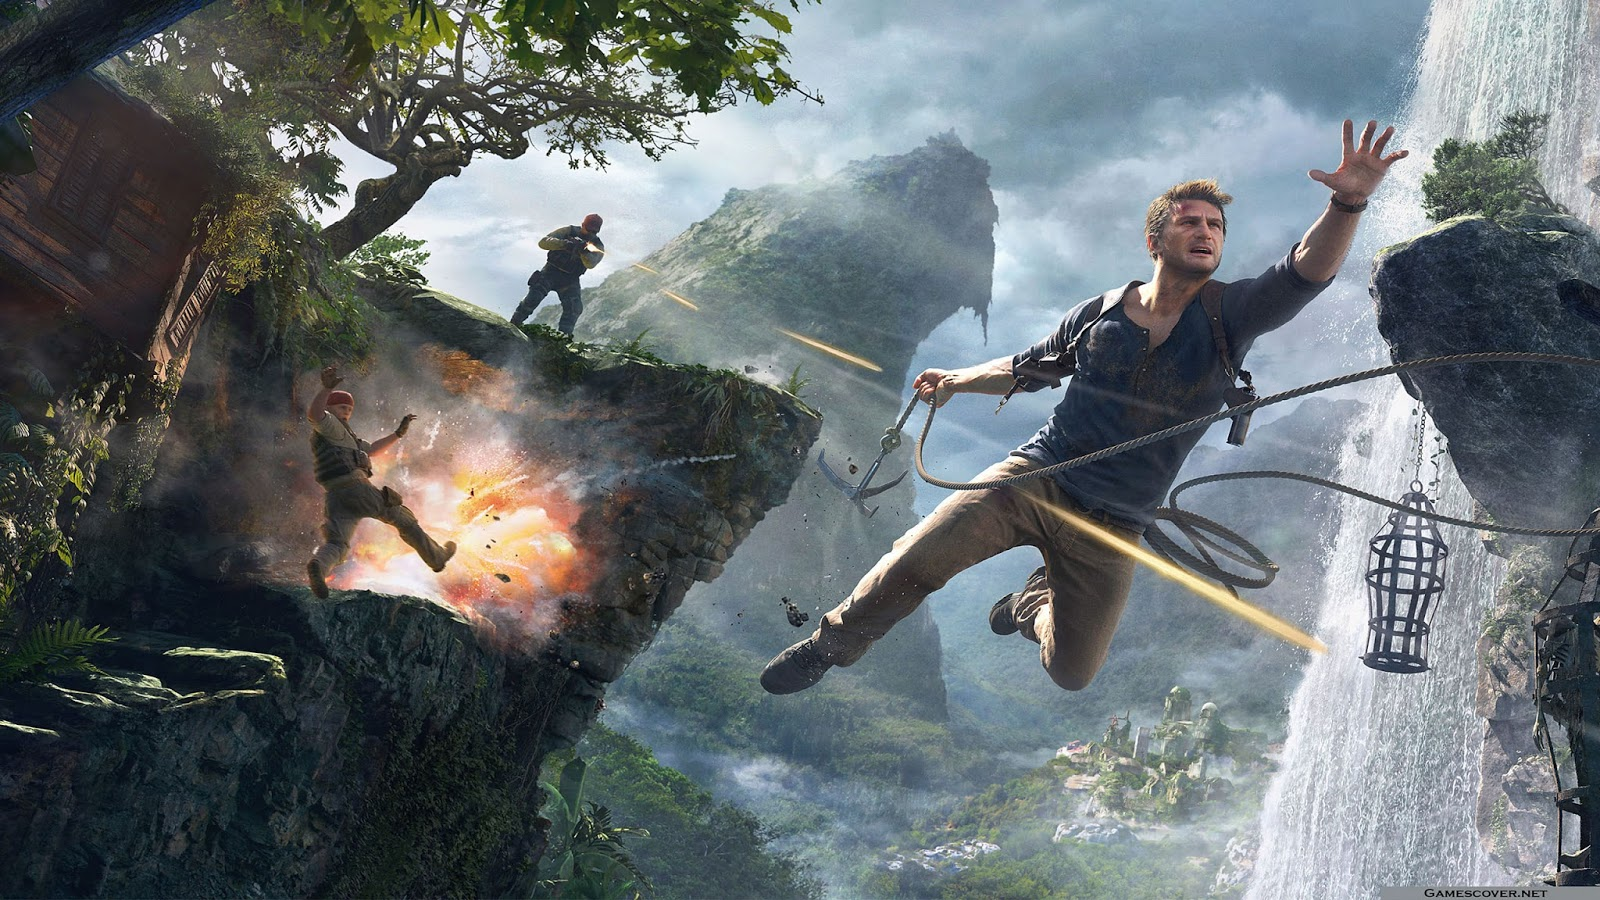 Uncharted 4 Wallpapers - Read games review, play online games & download games wallpapers